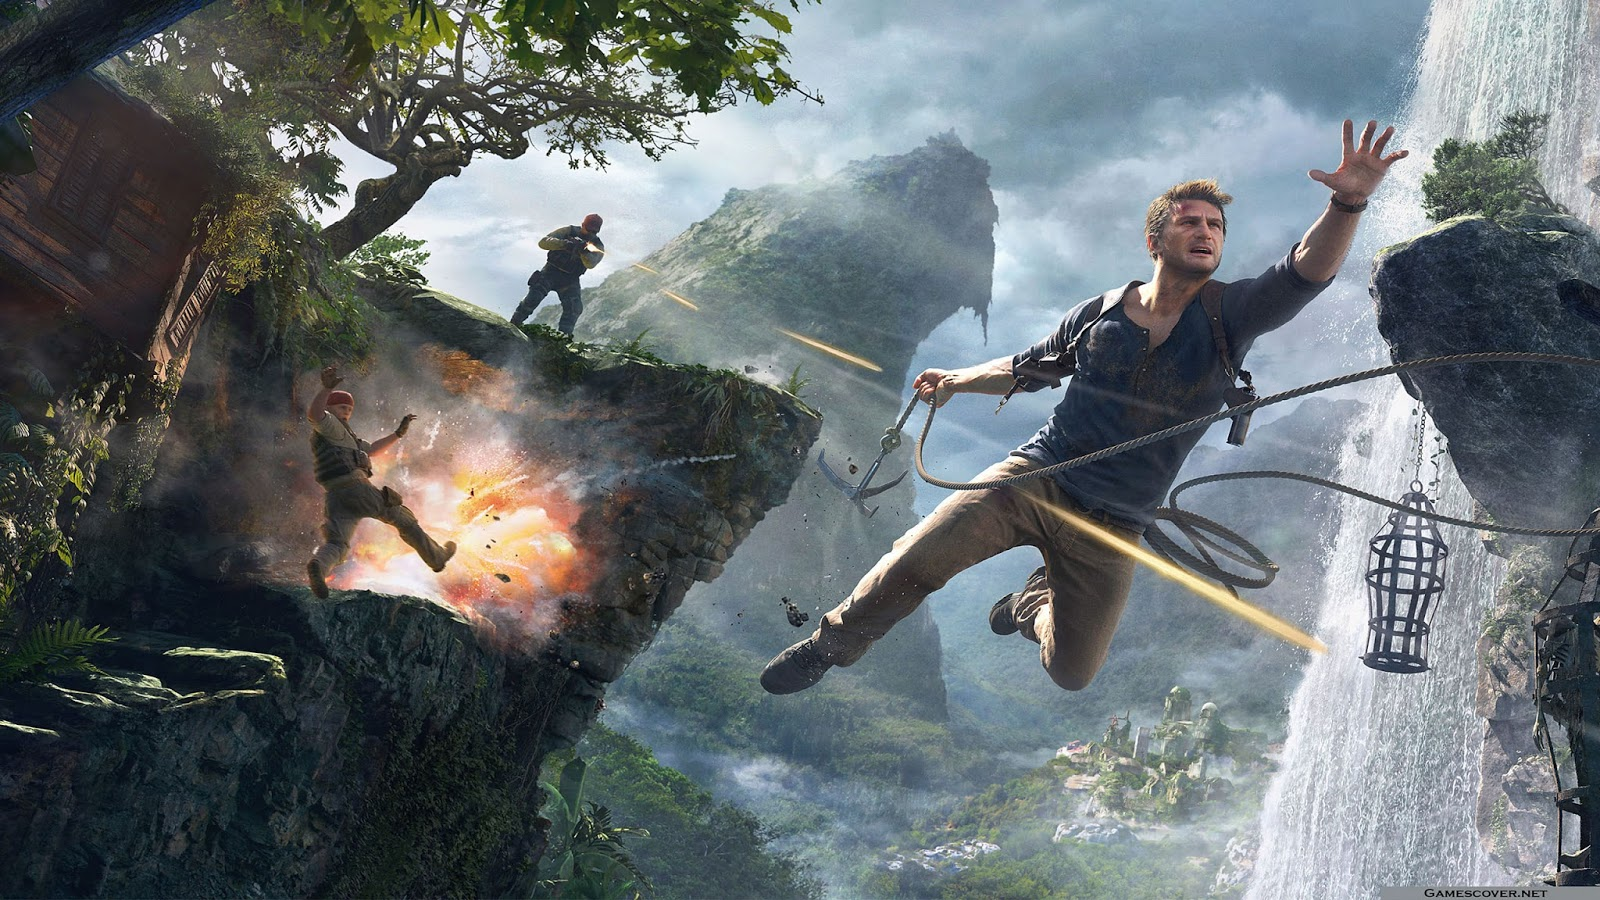 Uncharted 4 Wallpapers - Read games review, play online games & download games wallpapers